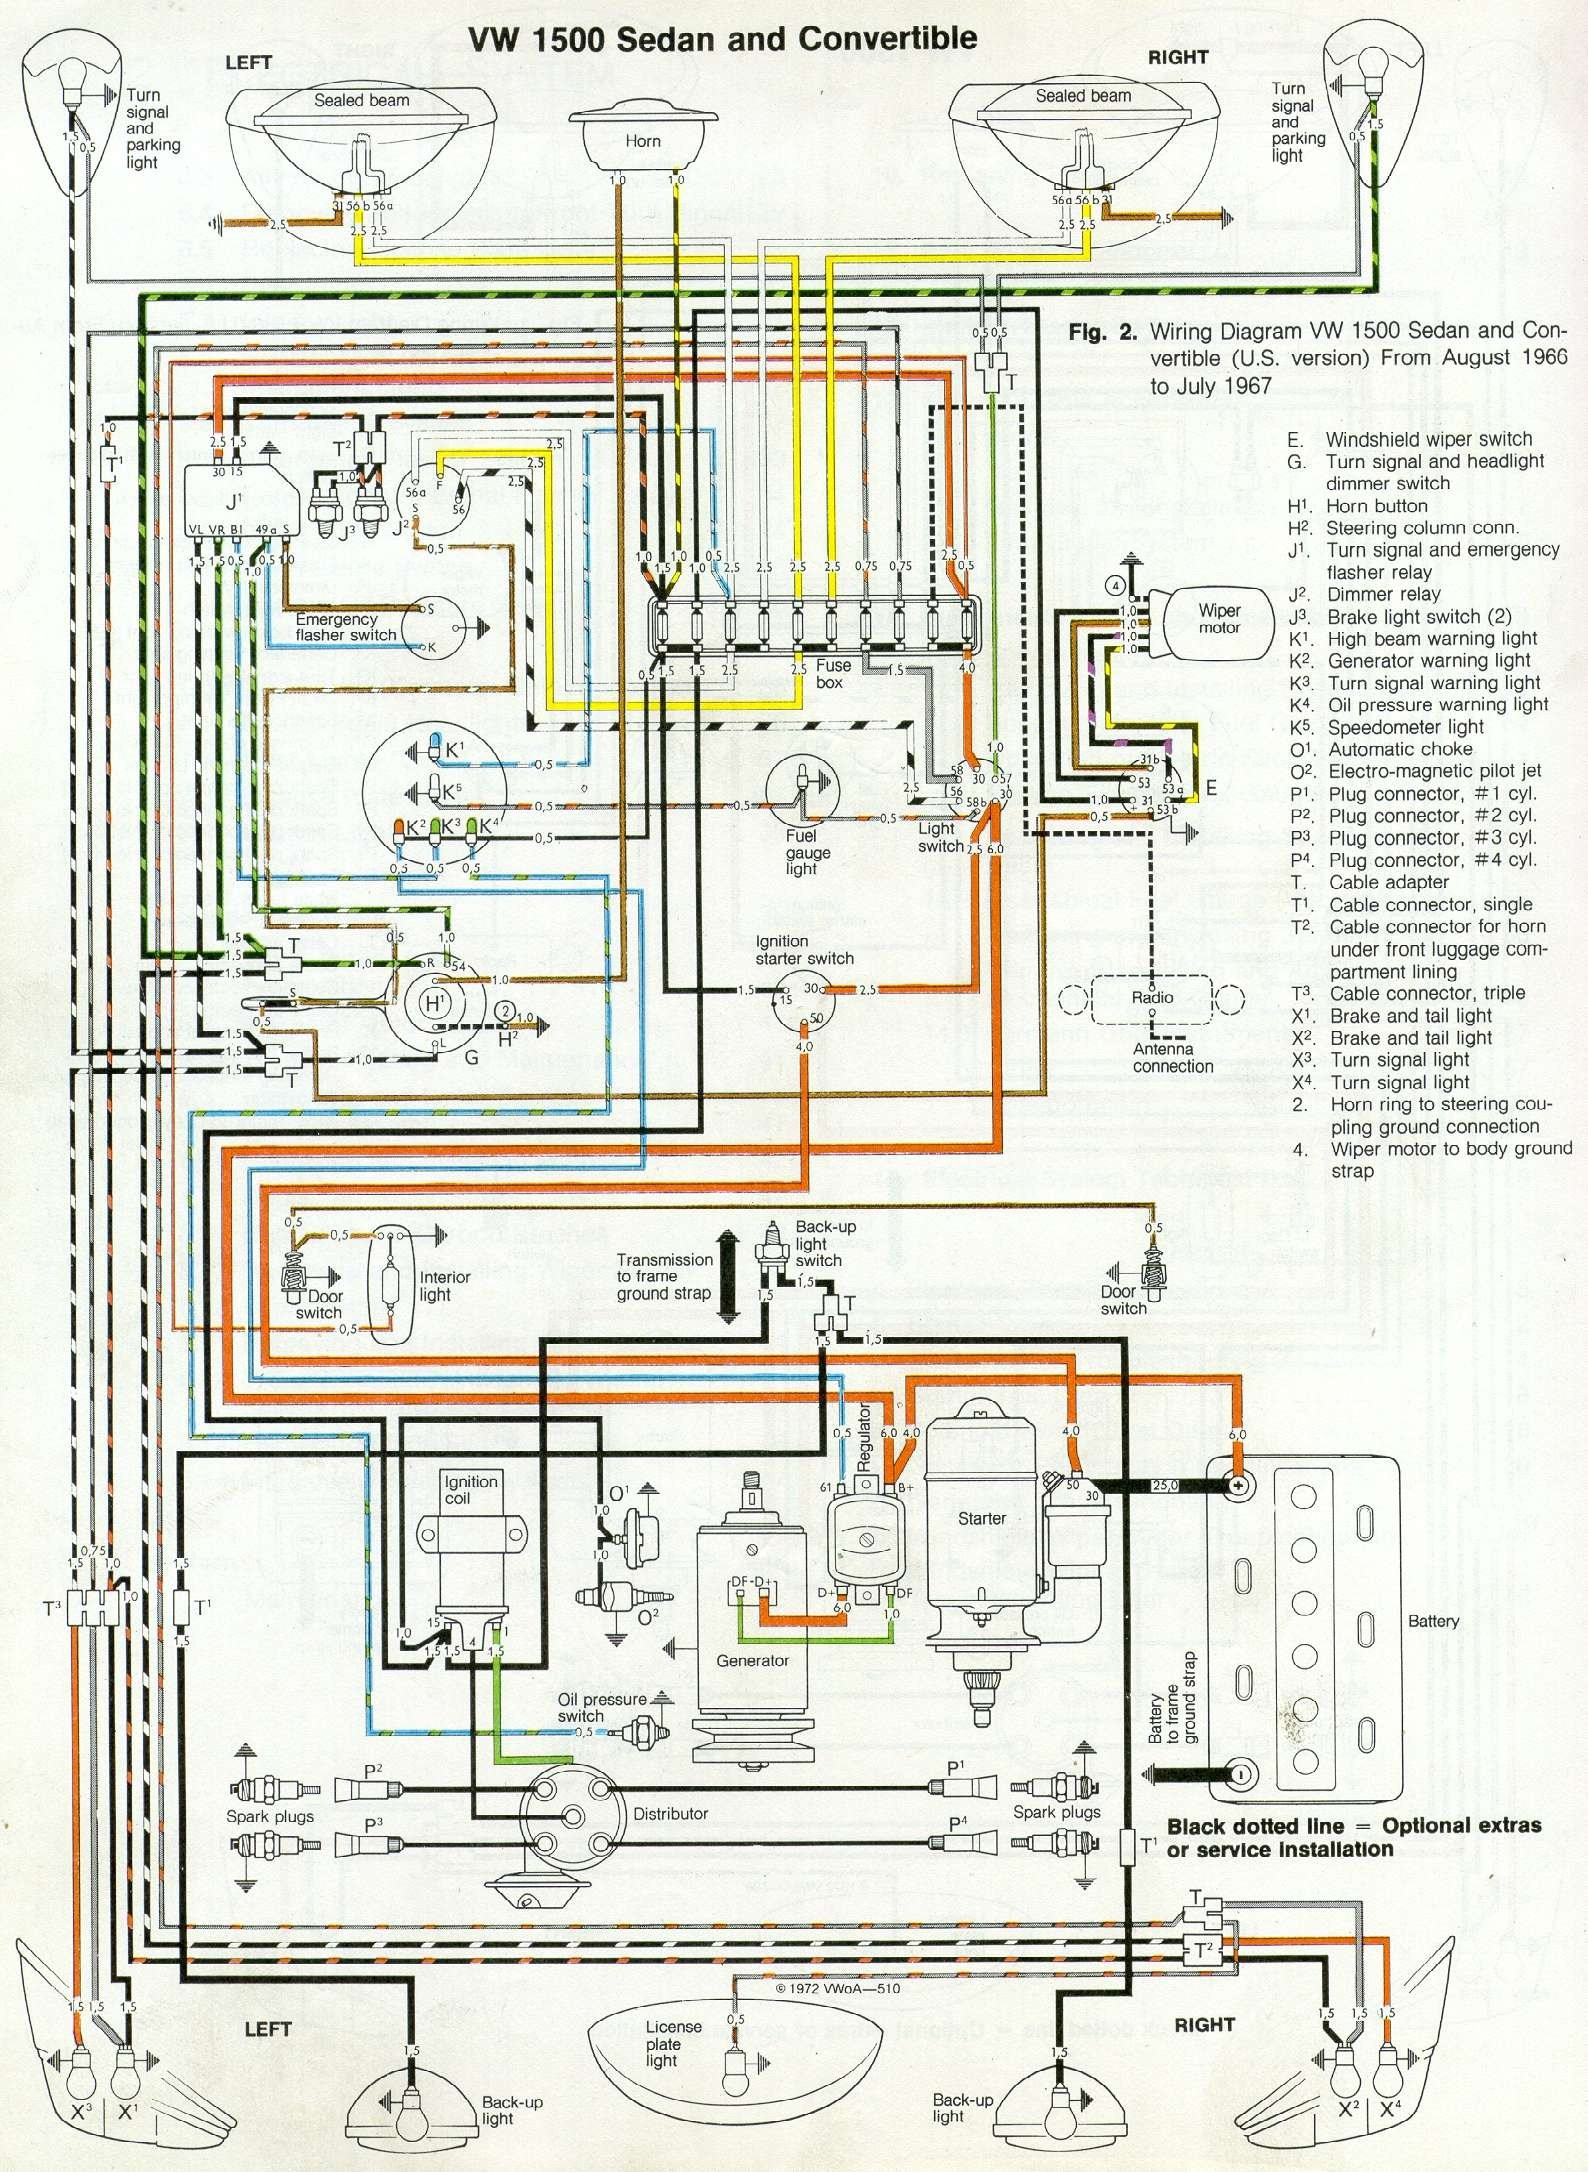 Vw Thing Wiring Harness Data Schematic Backup Light 67 Schematics Diagrams U2022 Rh Schoosretailstores Com 74 Beetle Lights